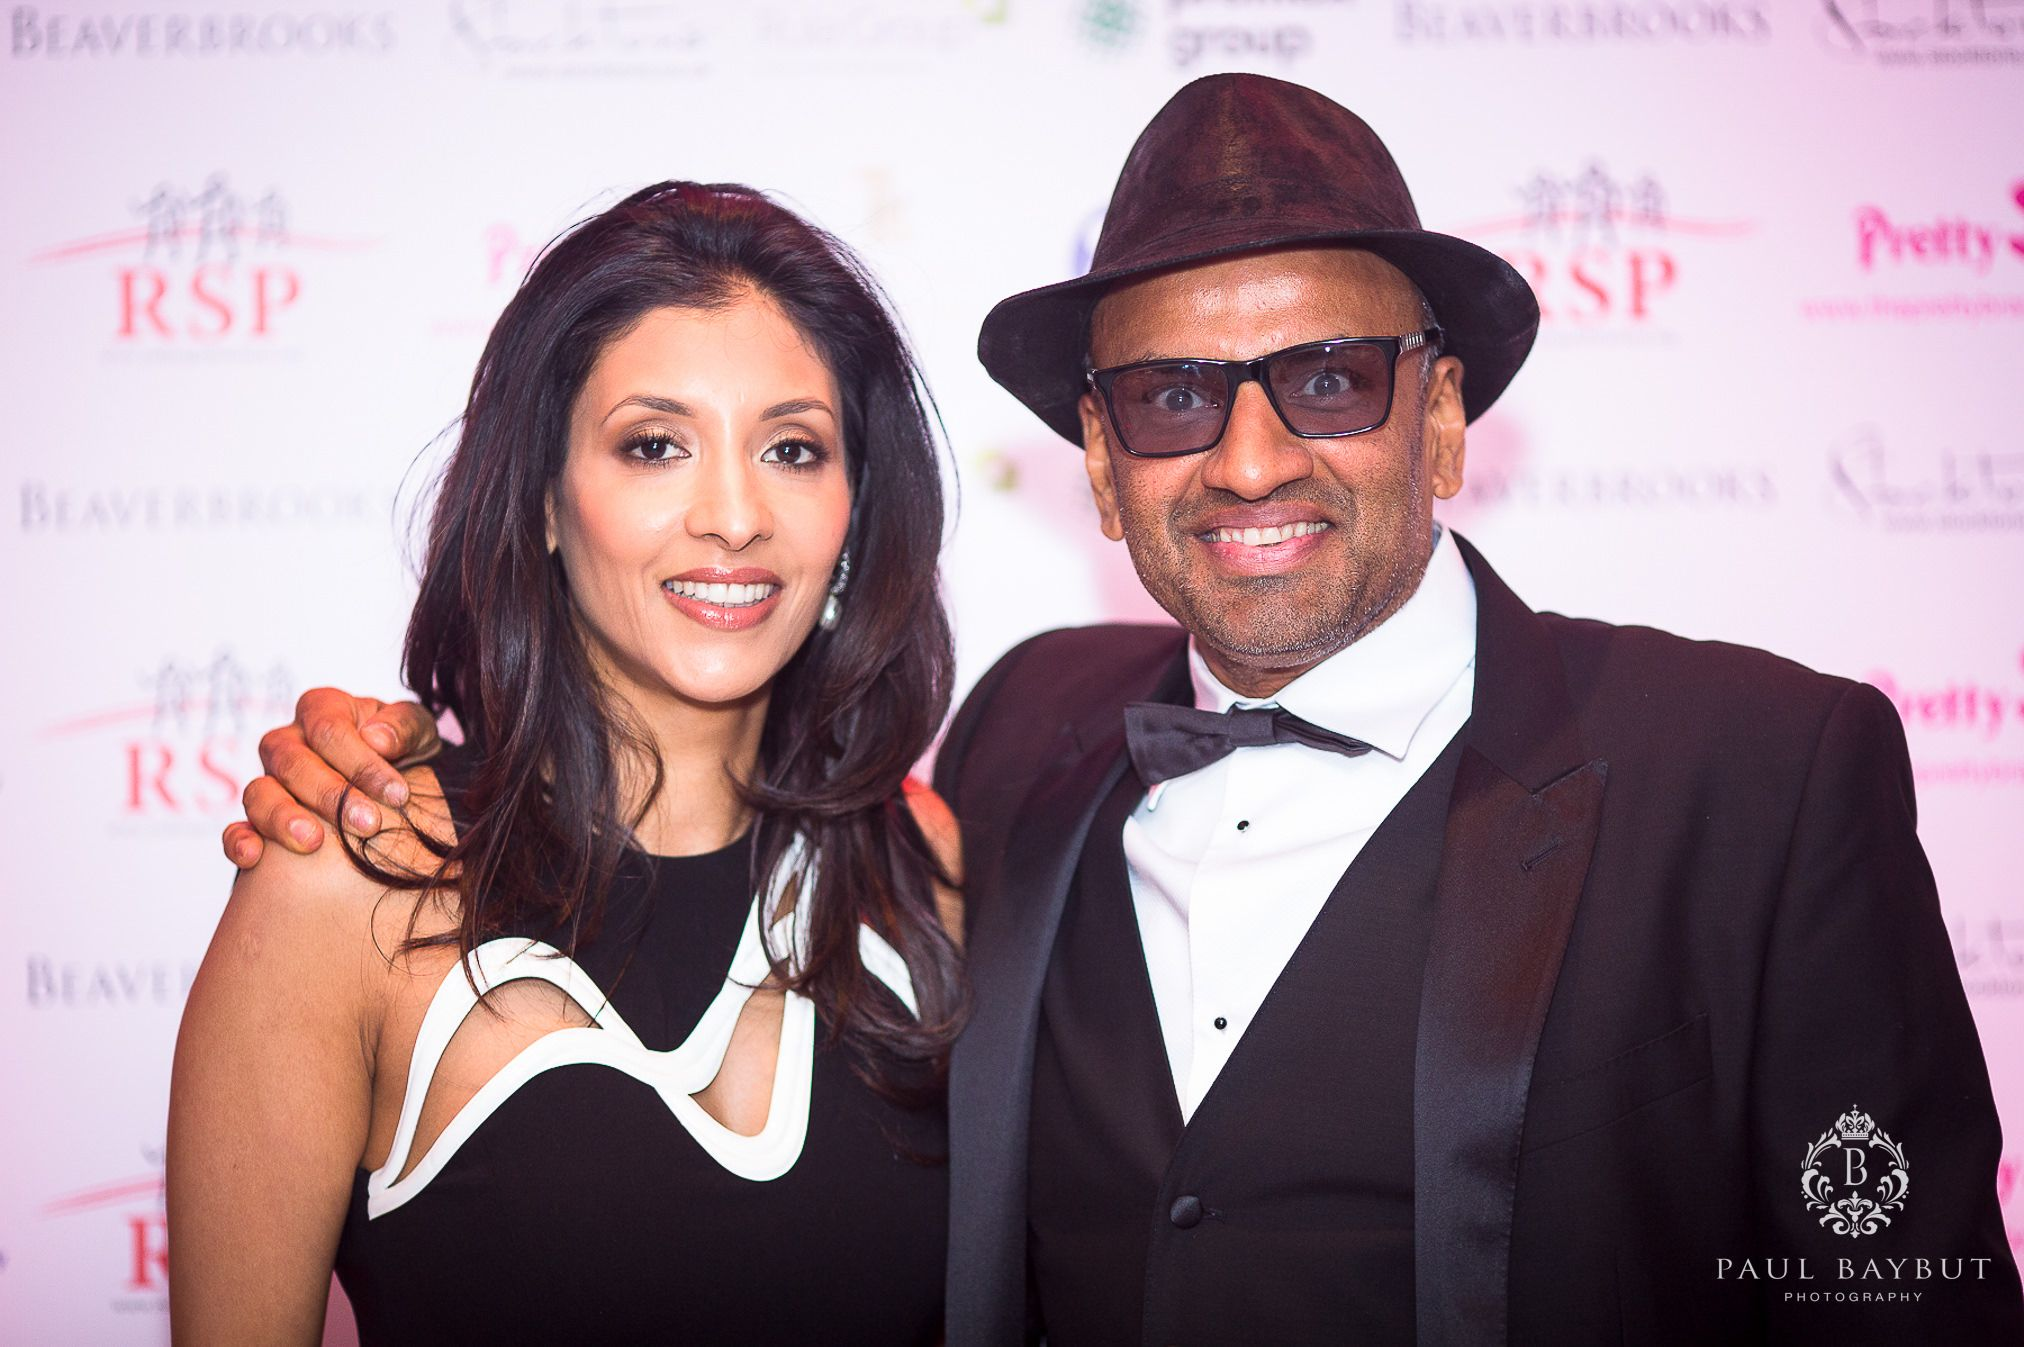 B&M owner Bobby Arora and his wife at a Charity Ball evening in a Manchester hotel